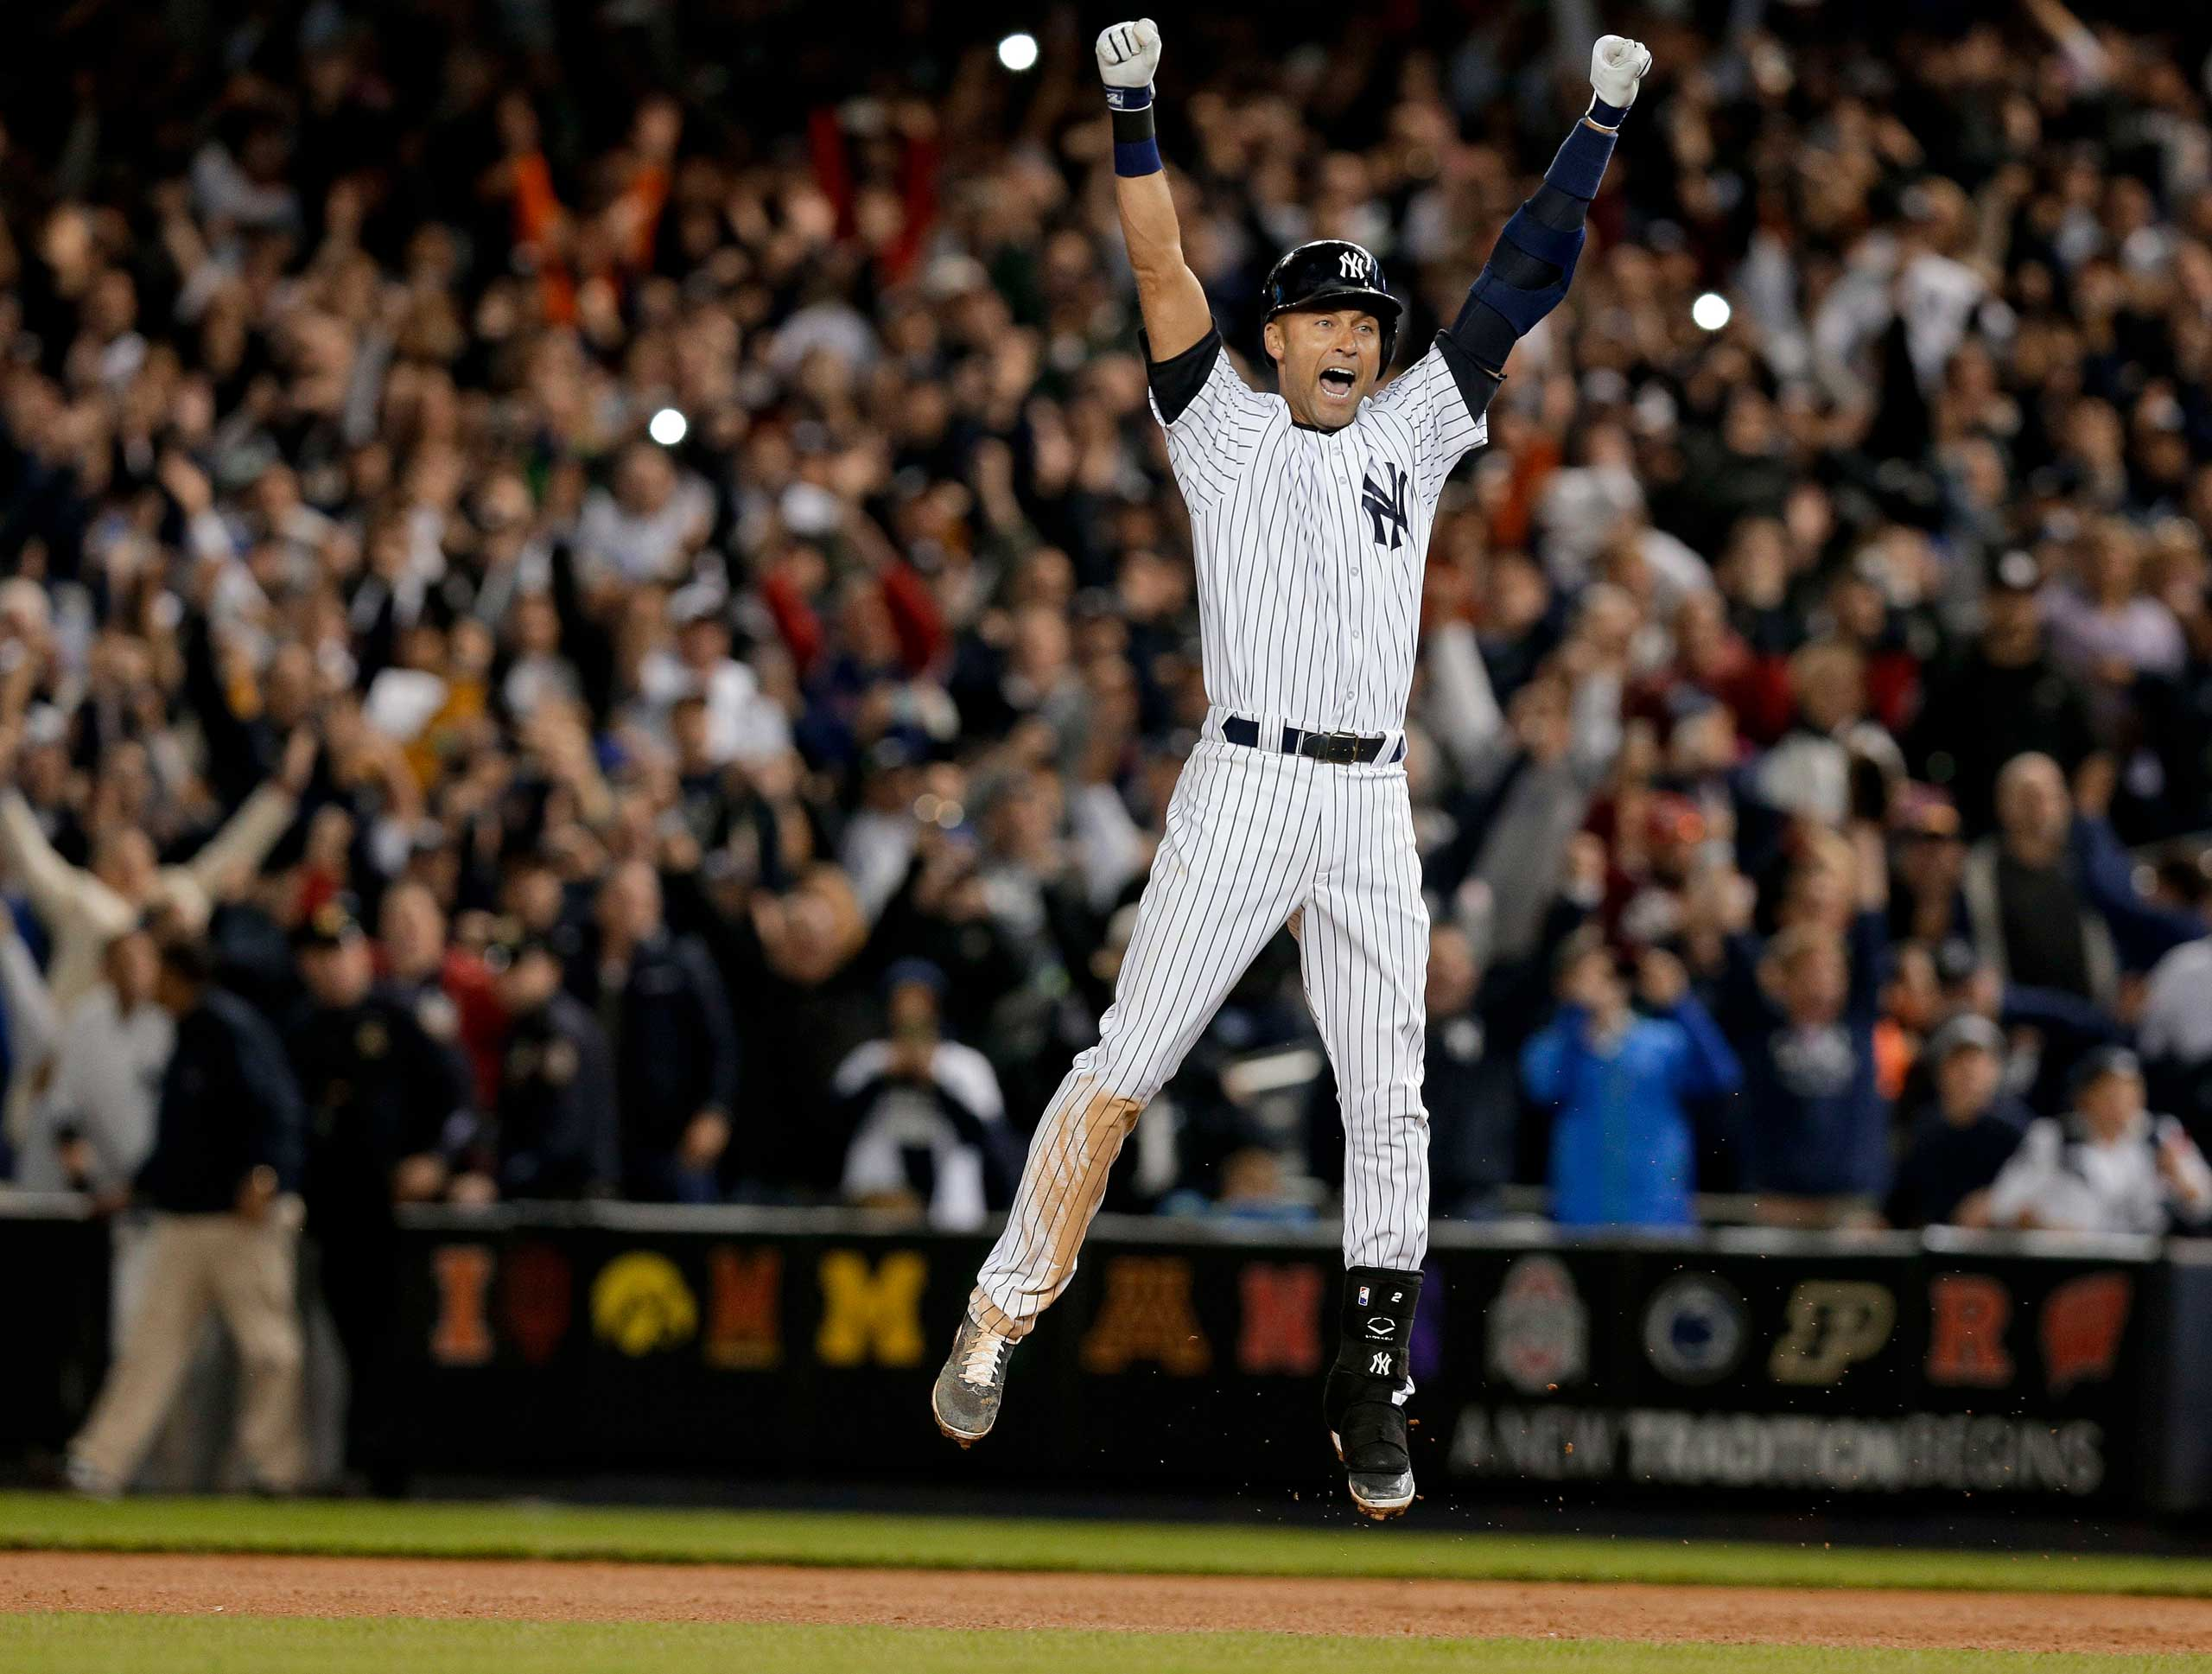 Sept. 25, 2014. New York Yankees' Derek Jeter jumps after hitting the game-winning single against the Baltimore Orioles in the ninth inning of a baseball game in New York.